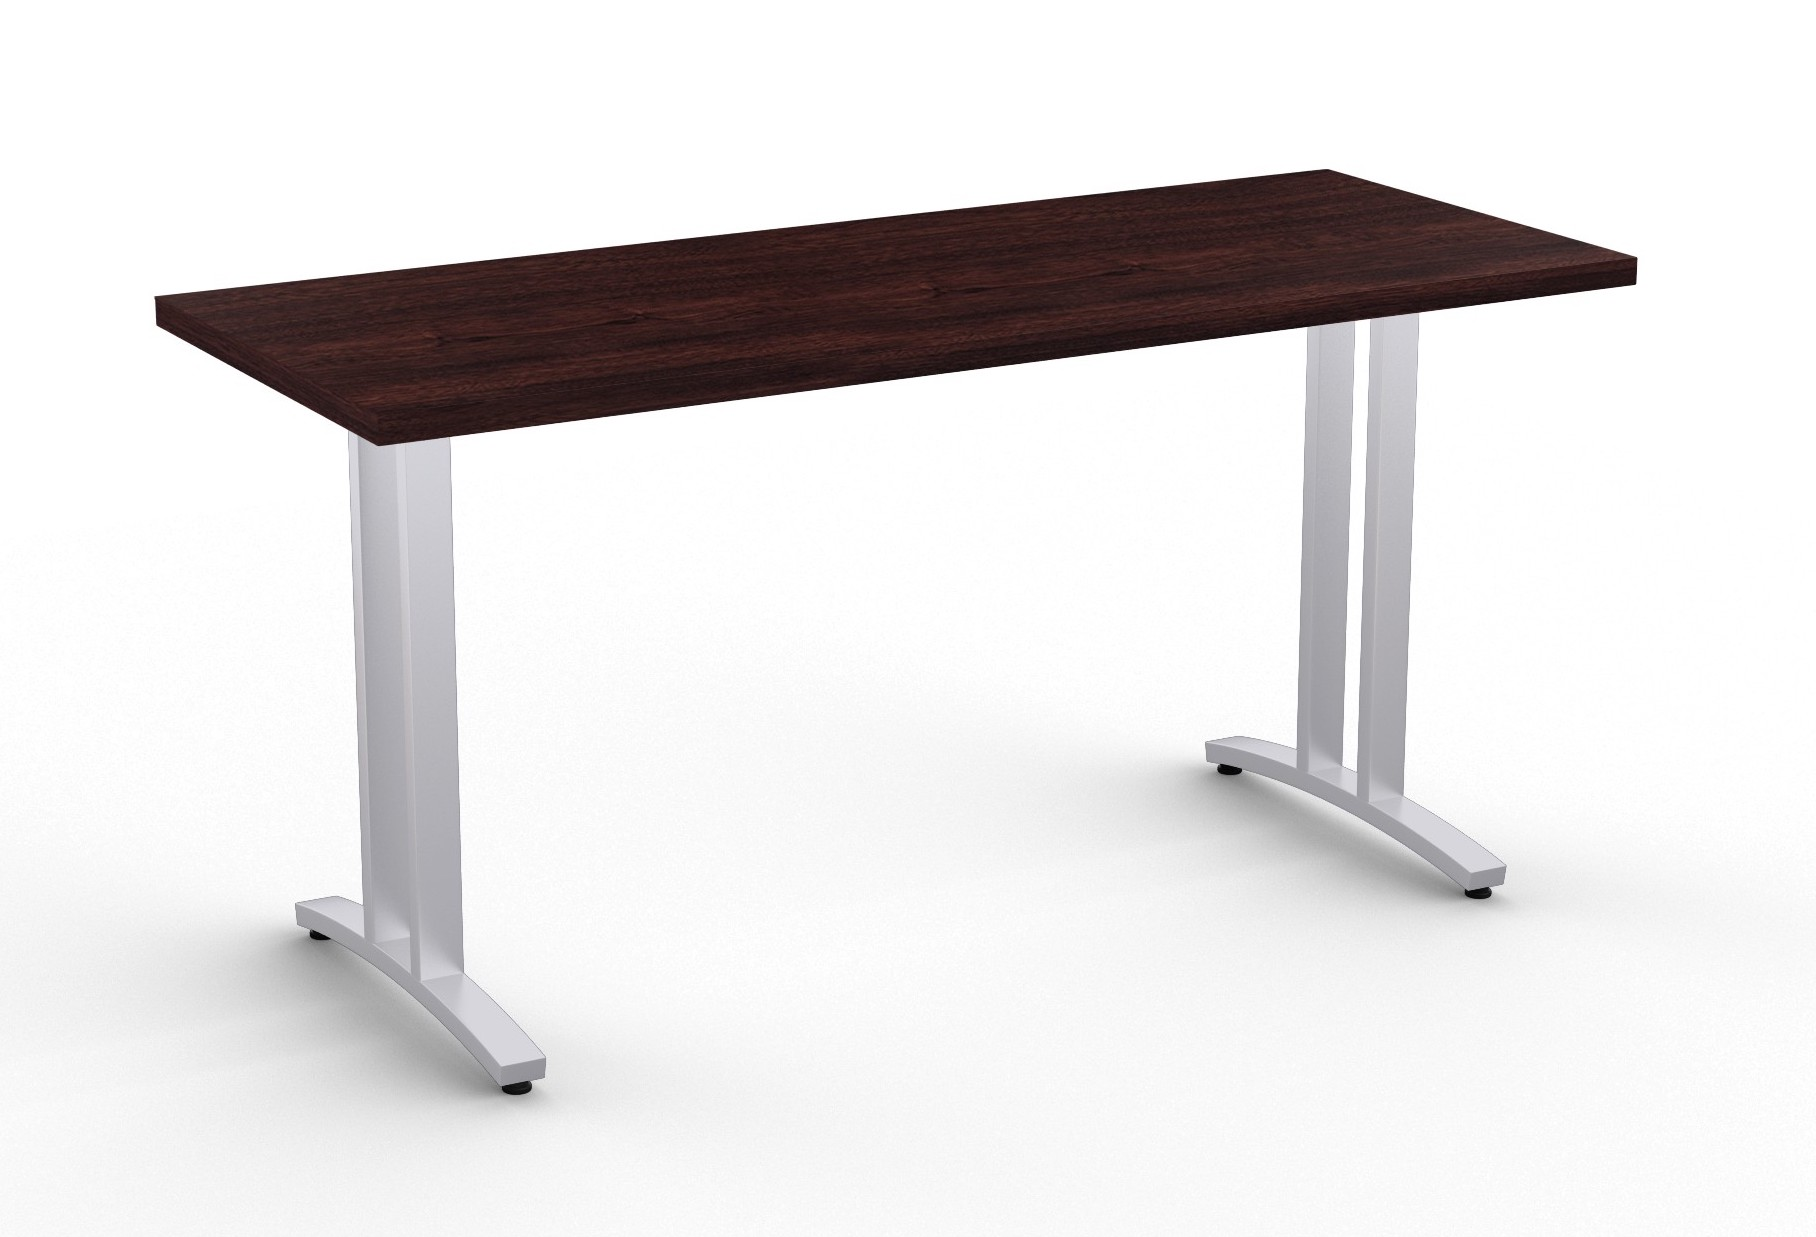 special-t structure 2tl work table in espresso